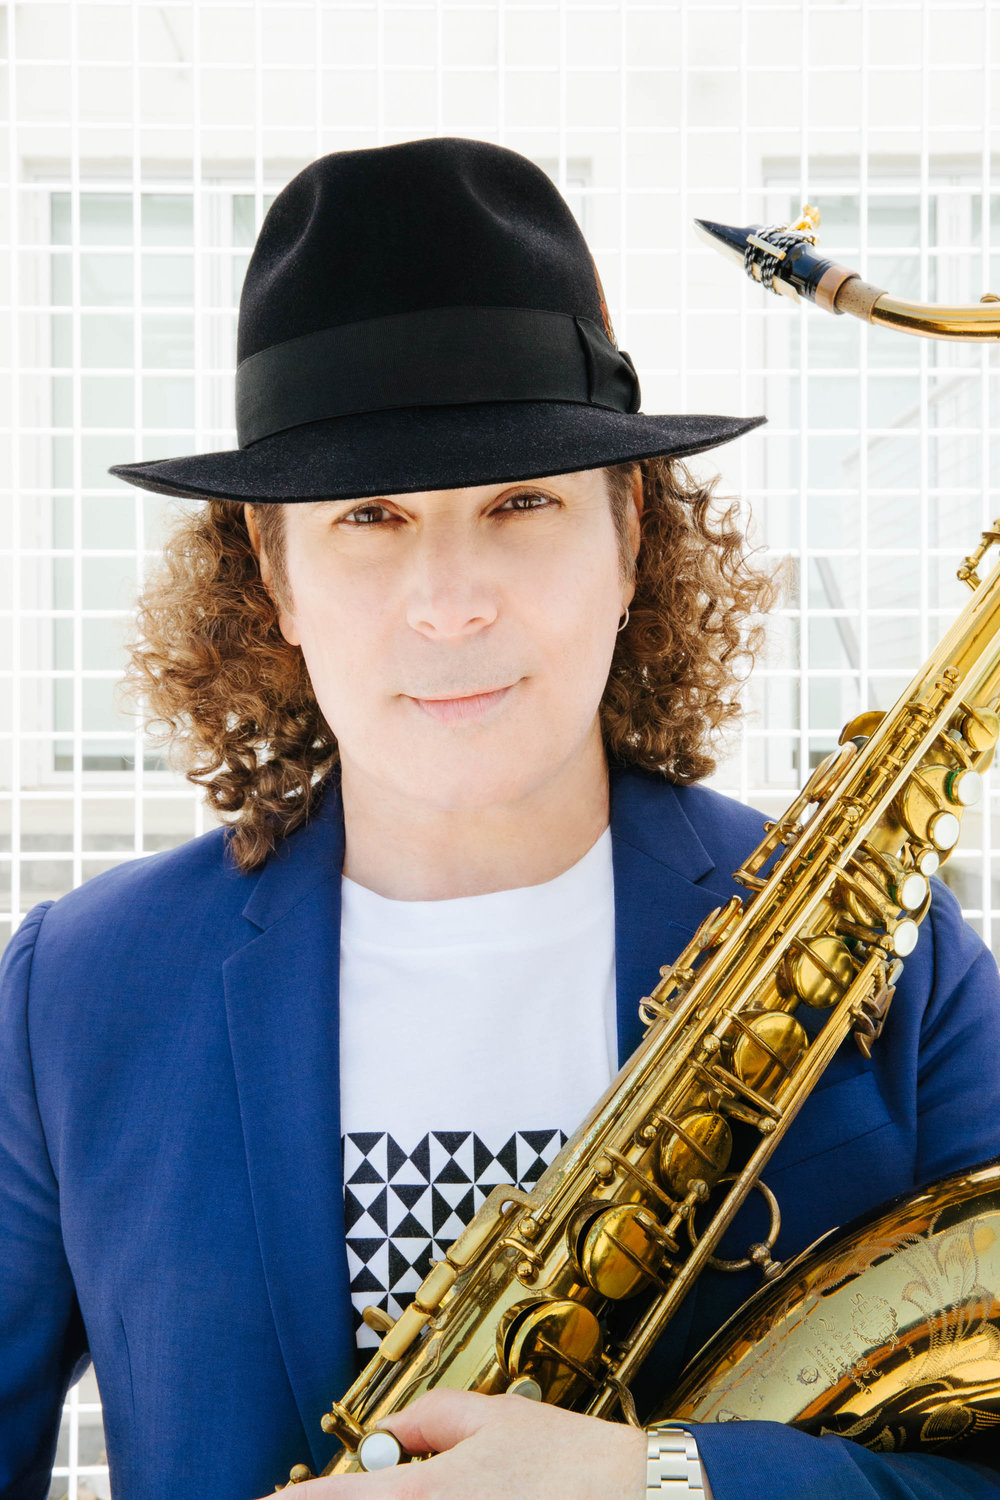 A_BoneyJames_Photo_by_Describe_The_Fauna.jpg